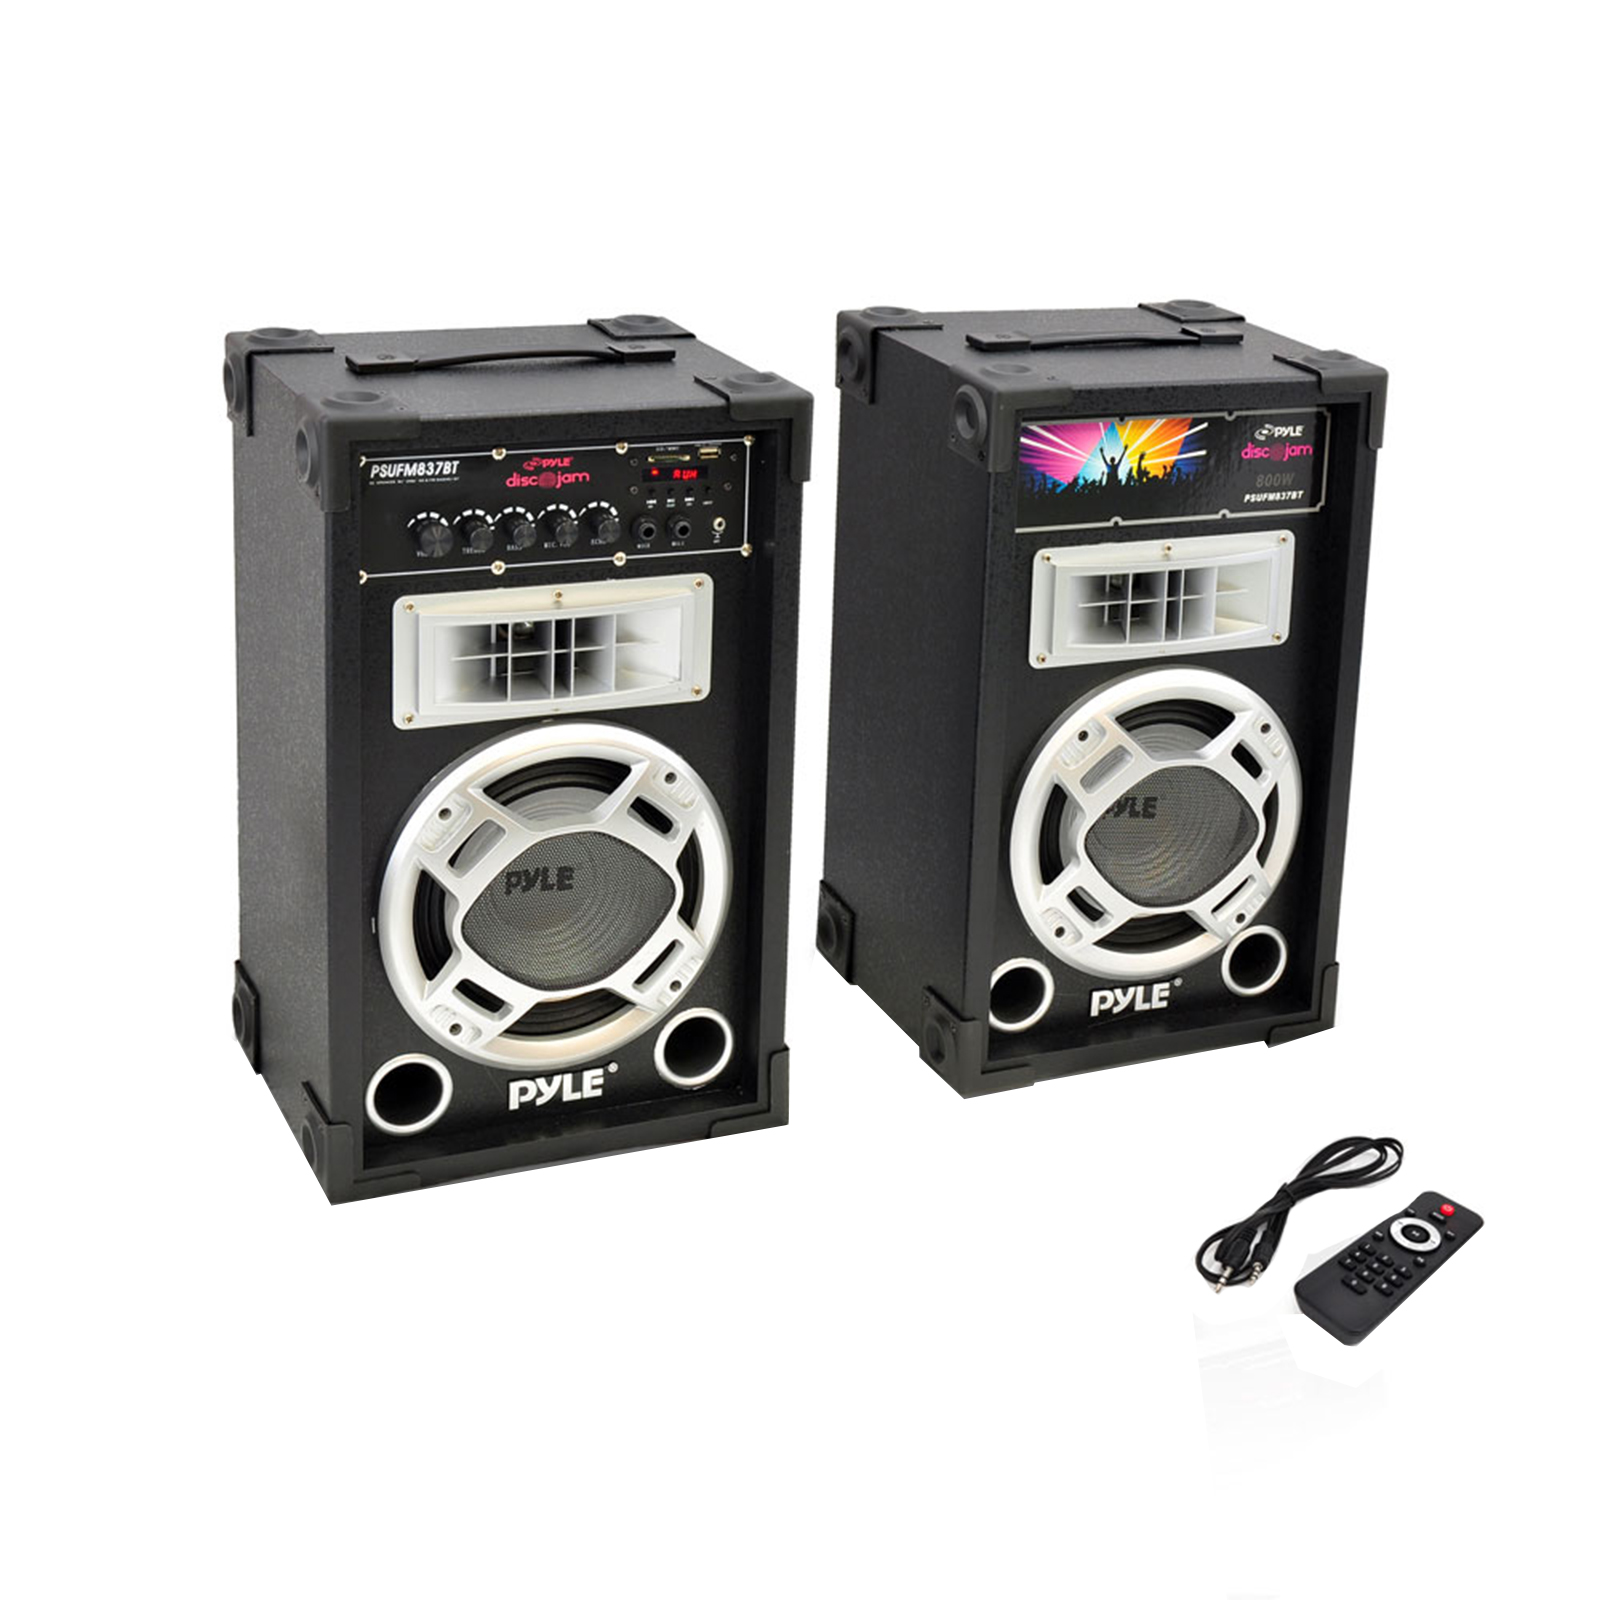 Dual 800 Watt Disco Jam Powered Two-Way PA BT Speaker System w/ USB/SD Card Readers, FM Radio, 3.5 mm AUX Input (Active & Passive Speakers)